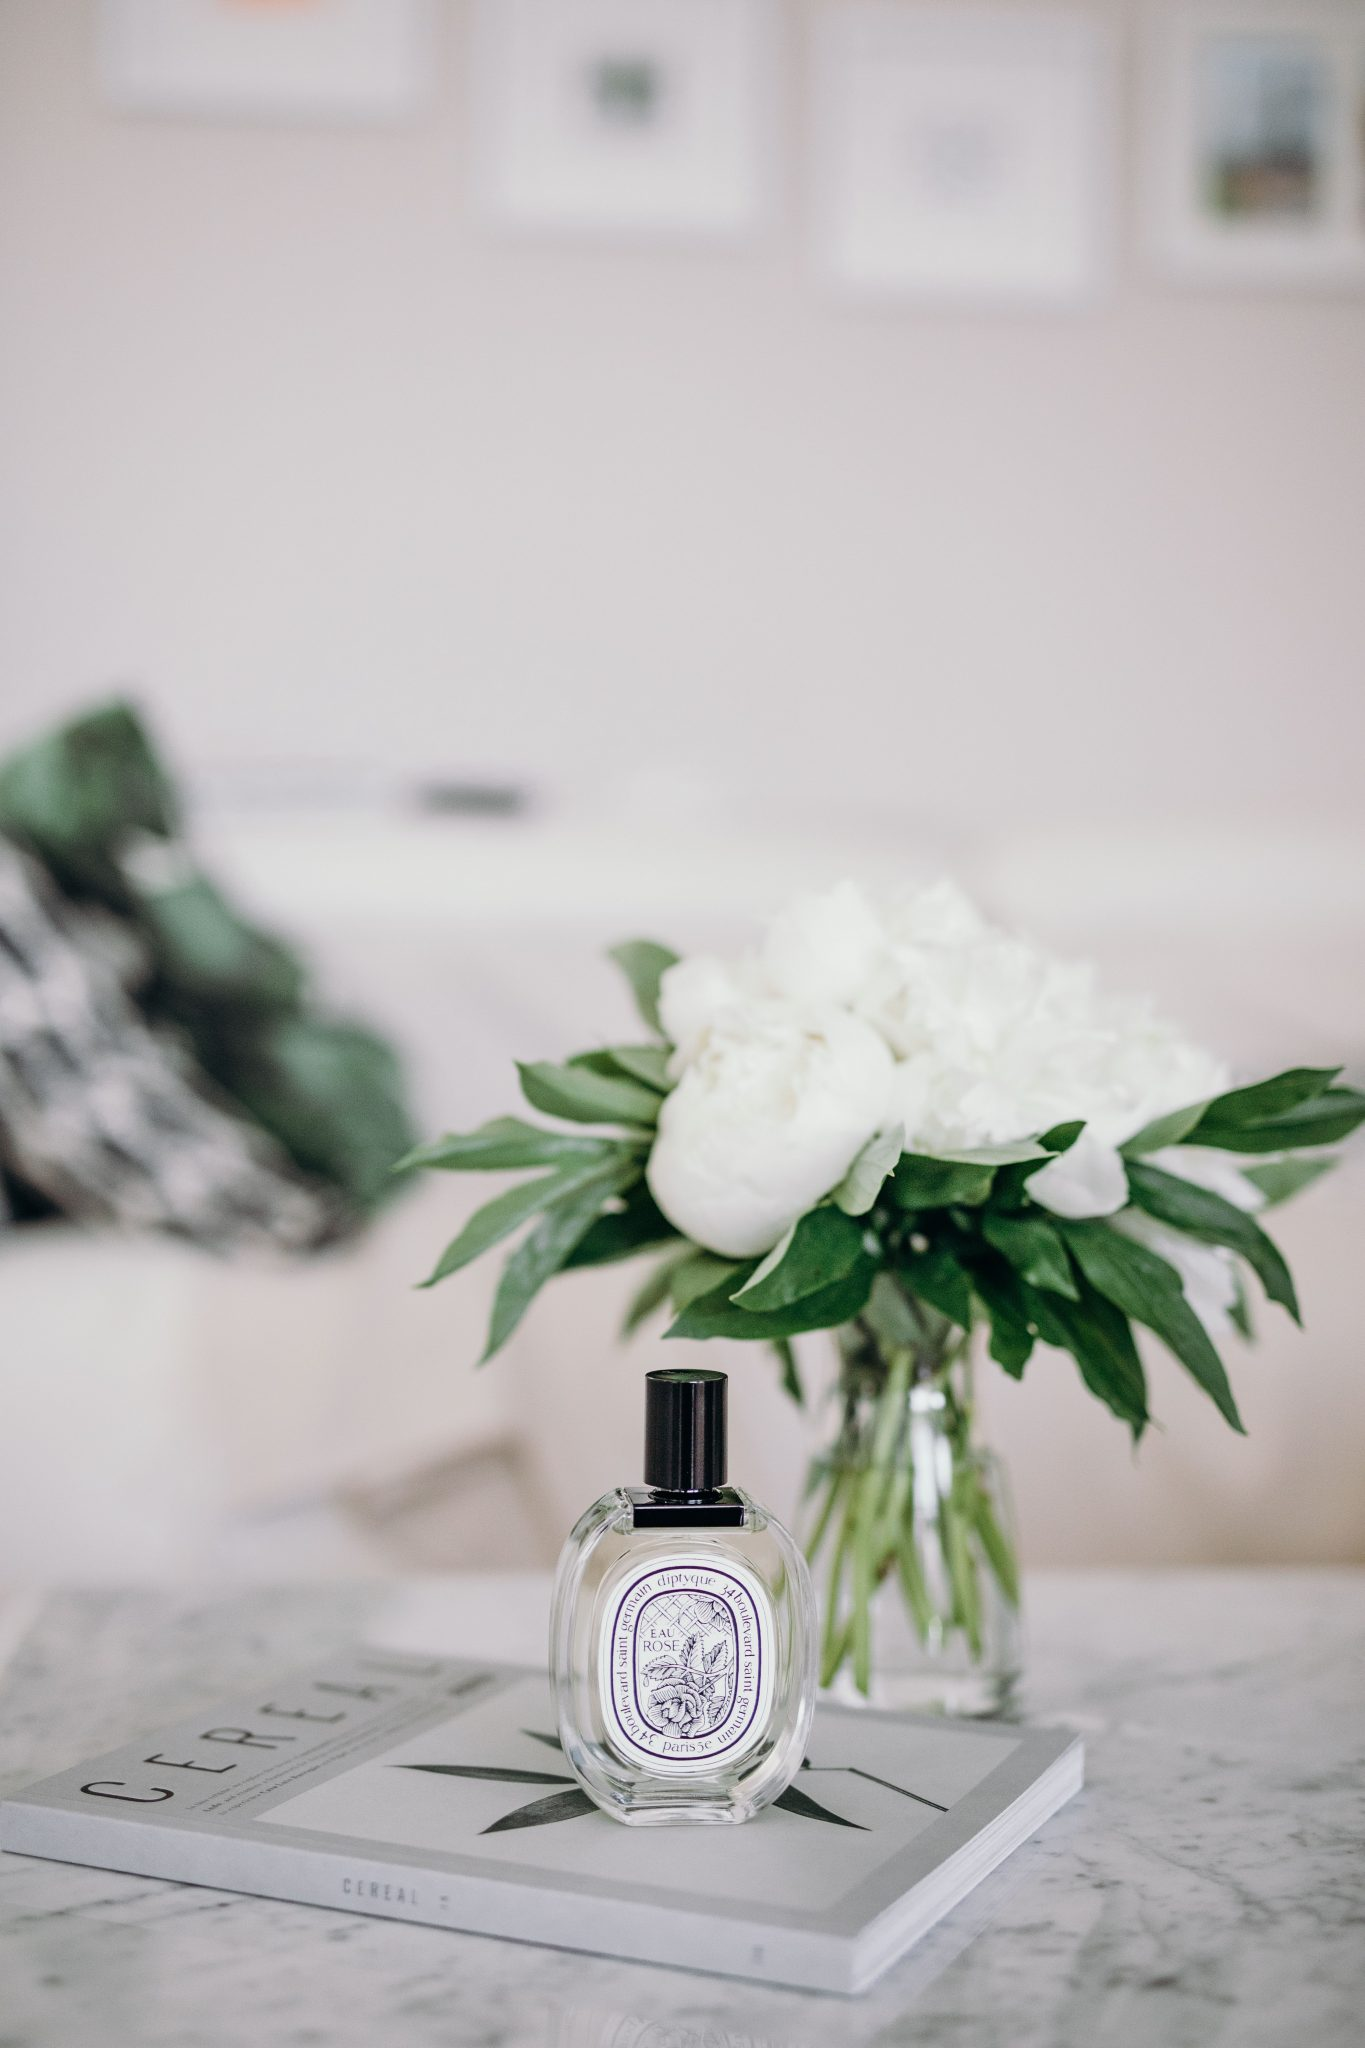 diptique rose perfume (2 of 2)